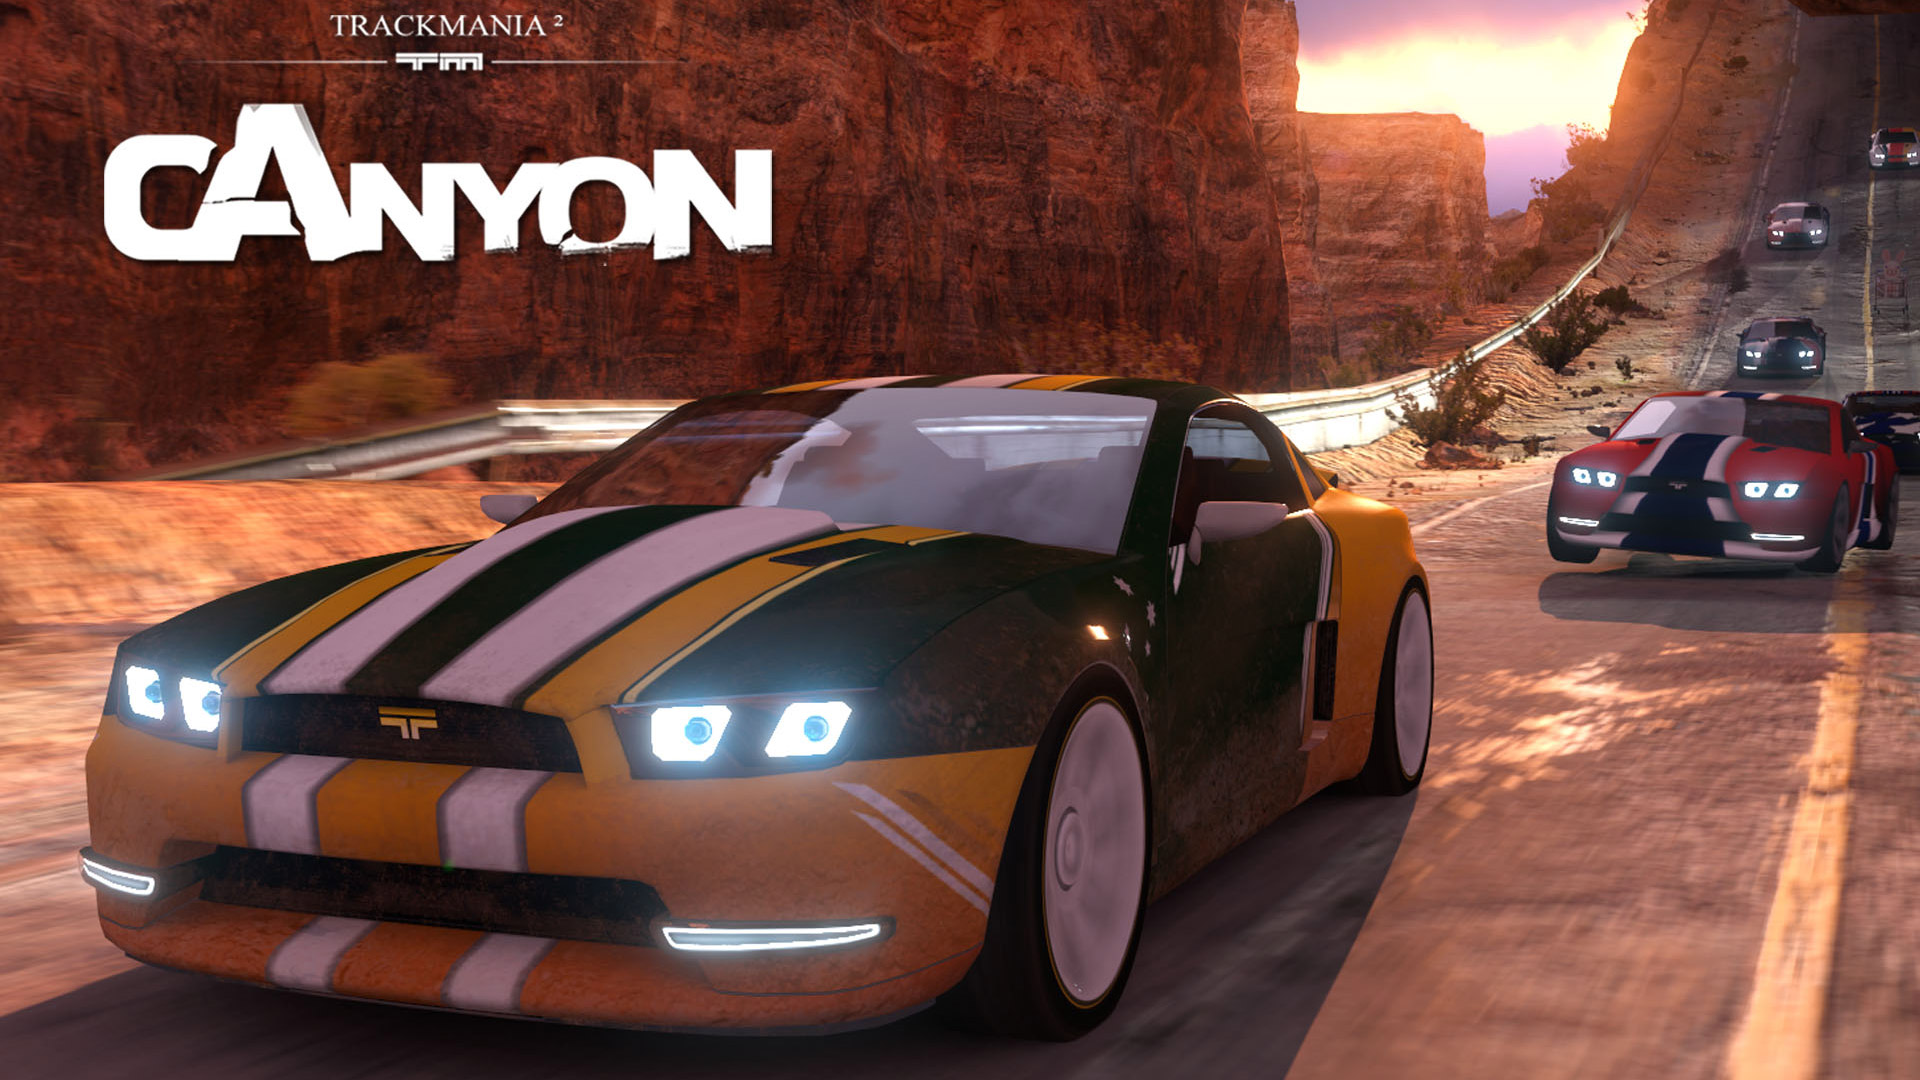 Free TrackMania 2: Canyon Wallpaper in 1920x1080